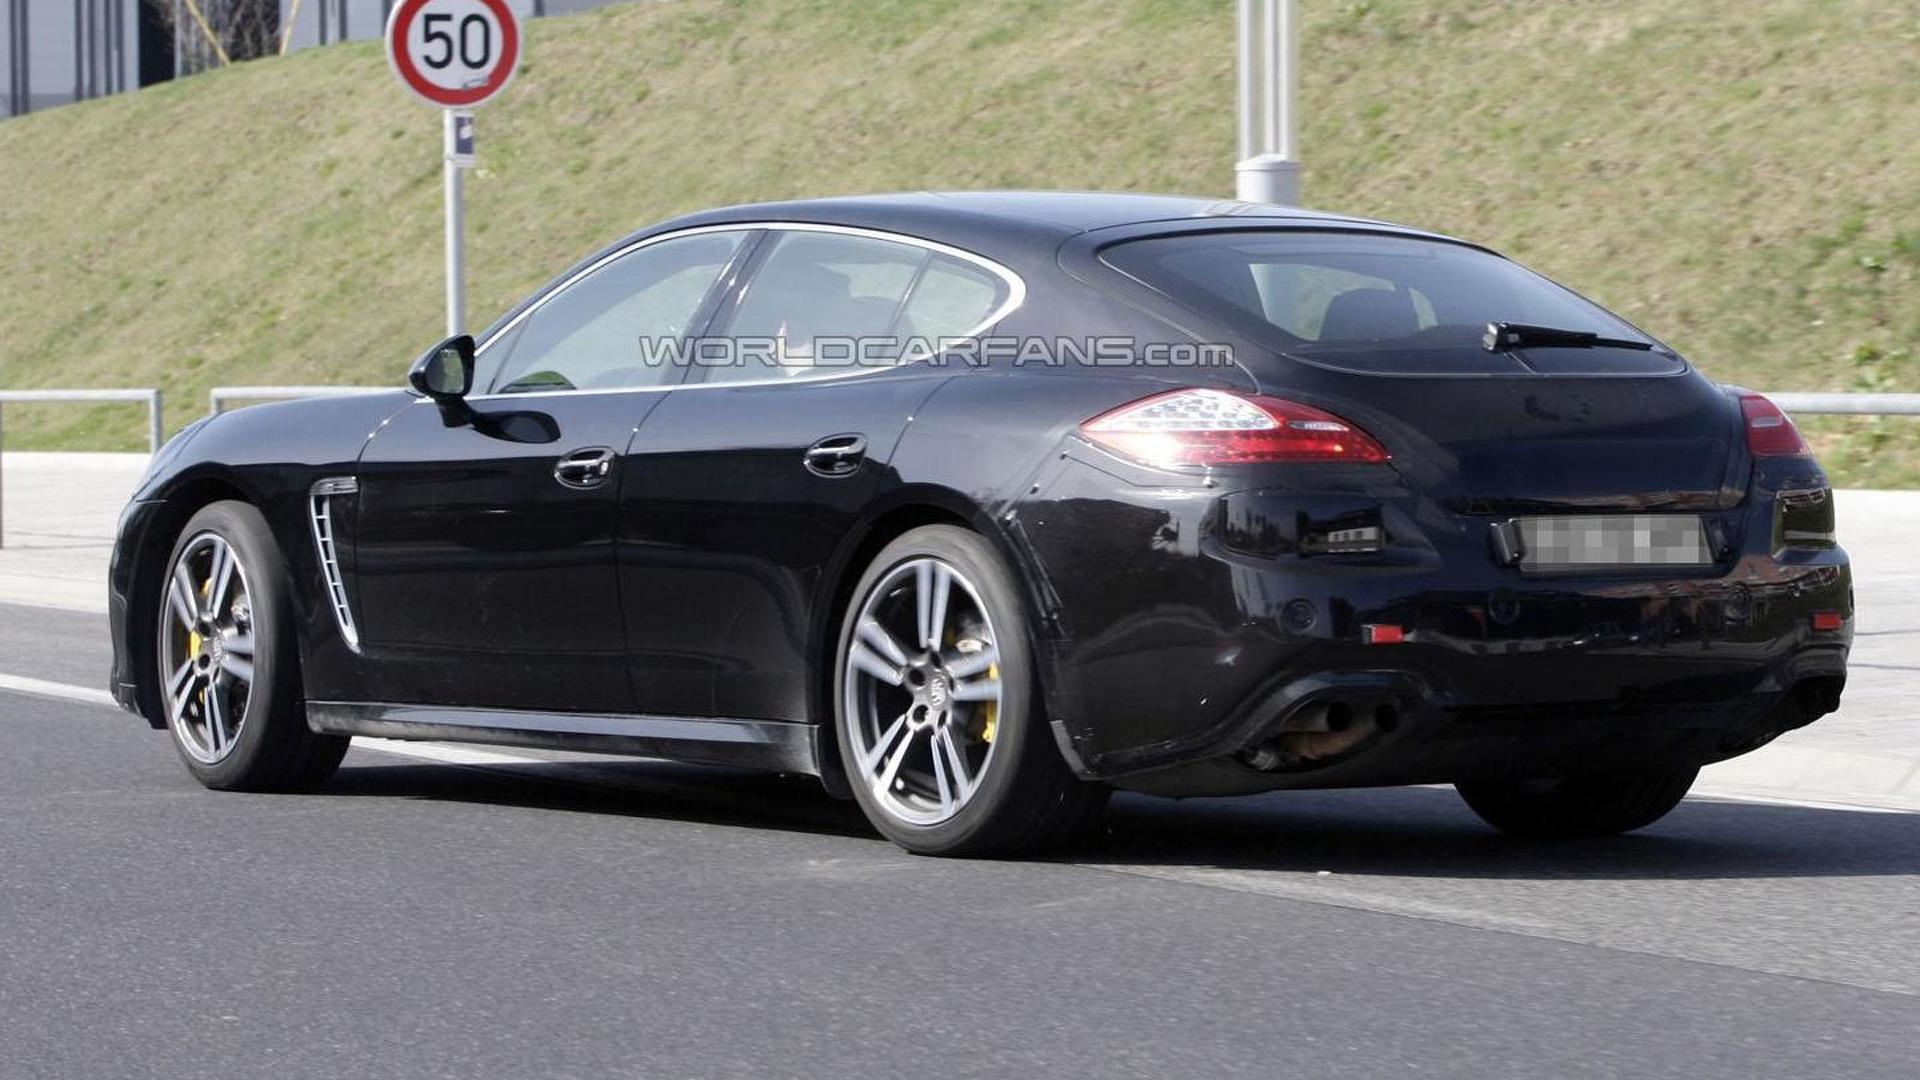 2013 Porsche Panamera Turbo facelift spied